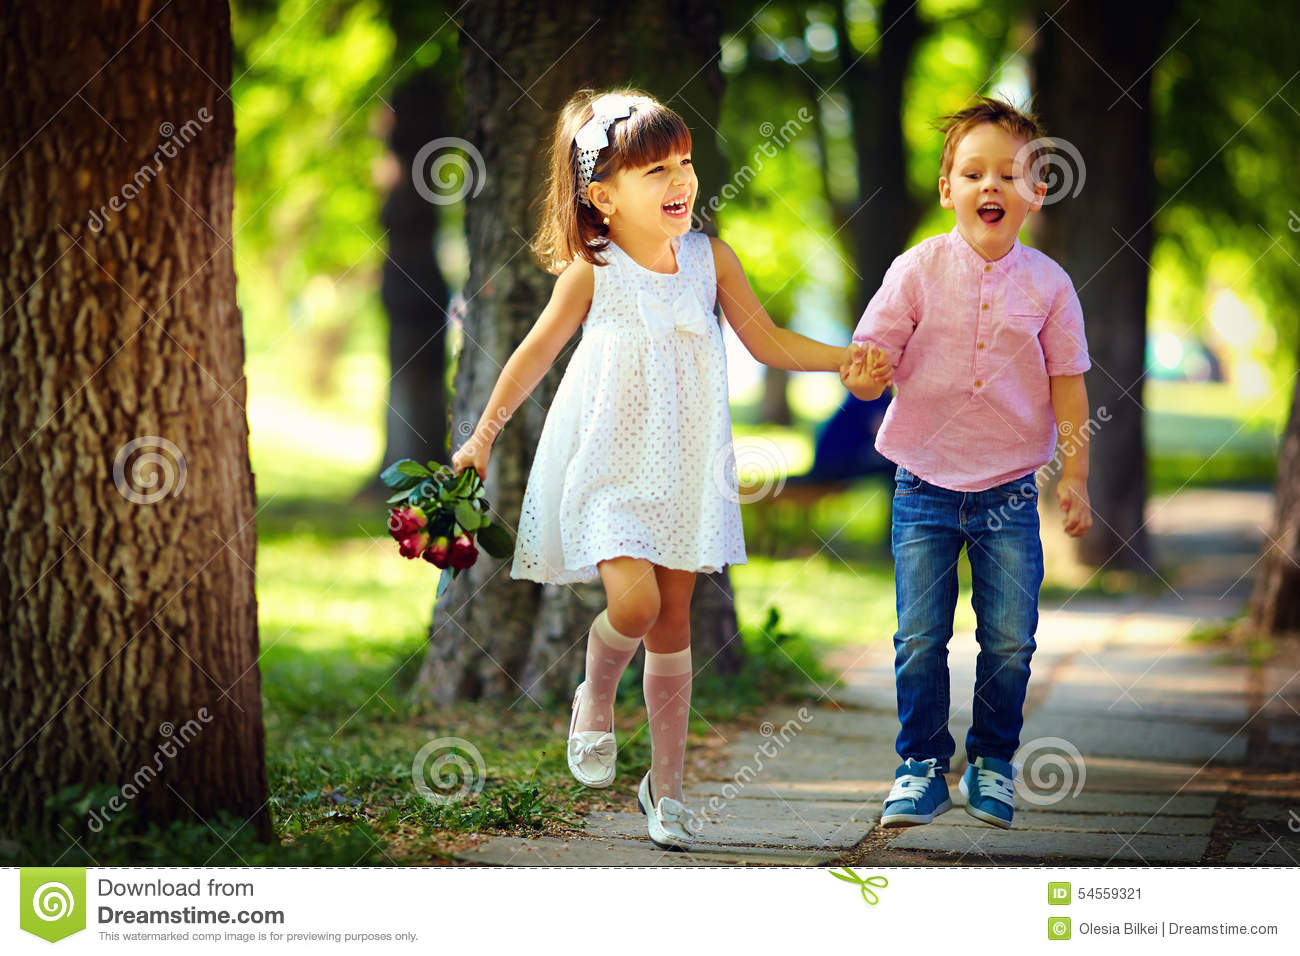 cute happy kids jumping in summer park stock image - image of love